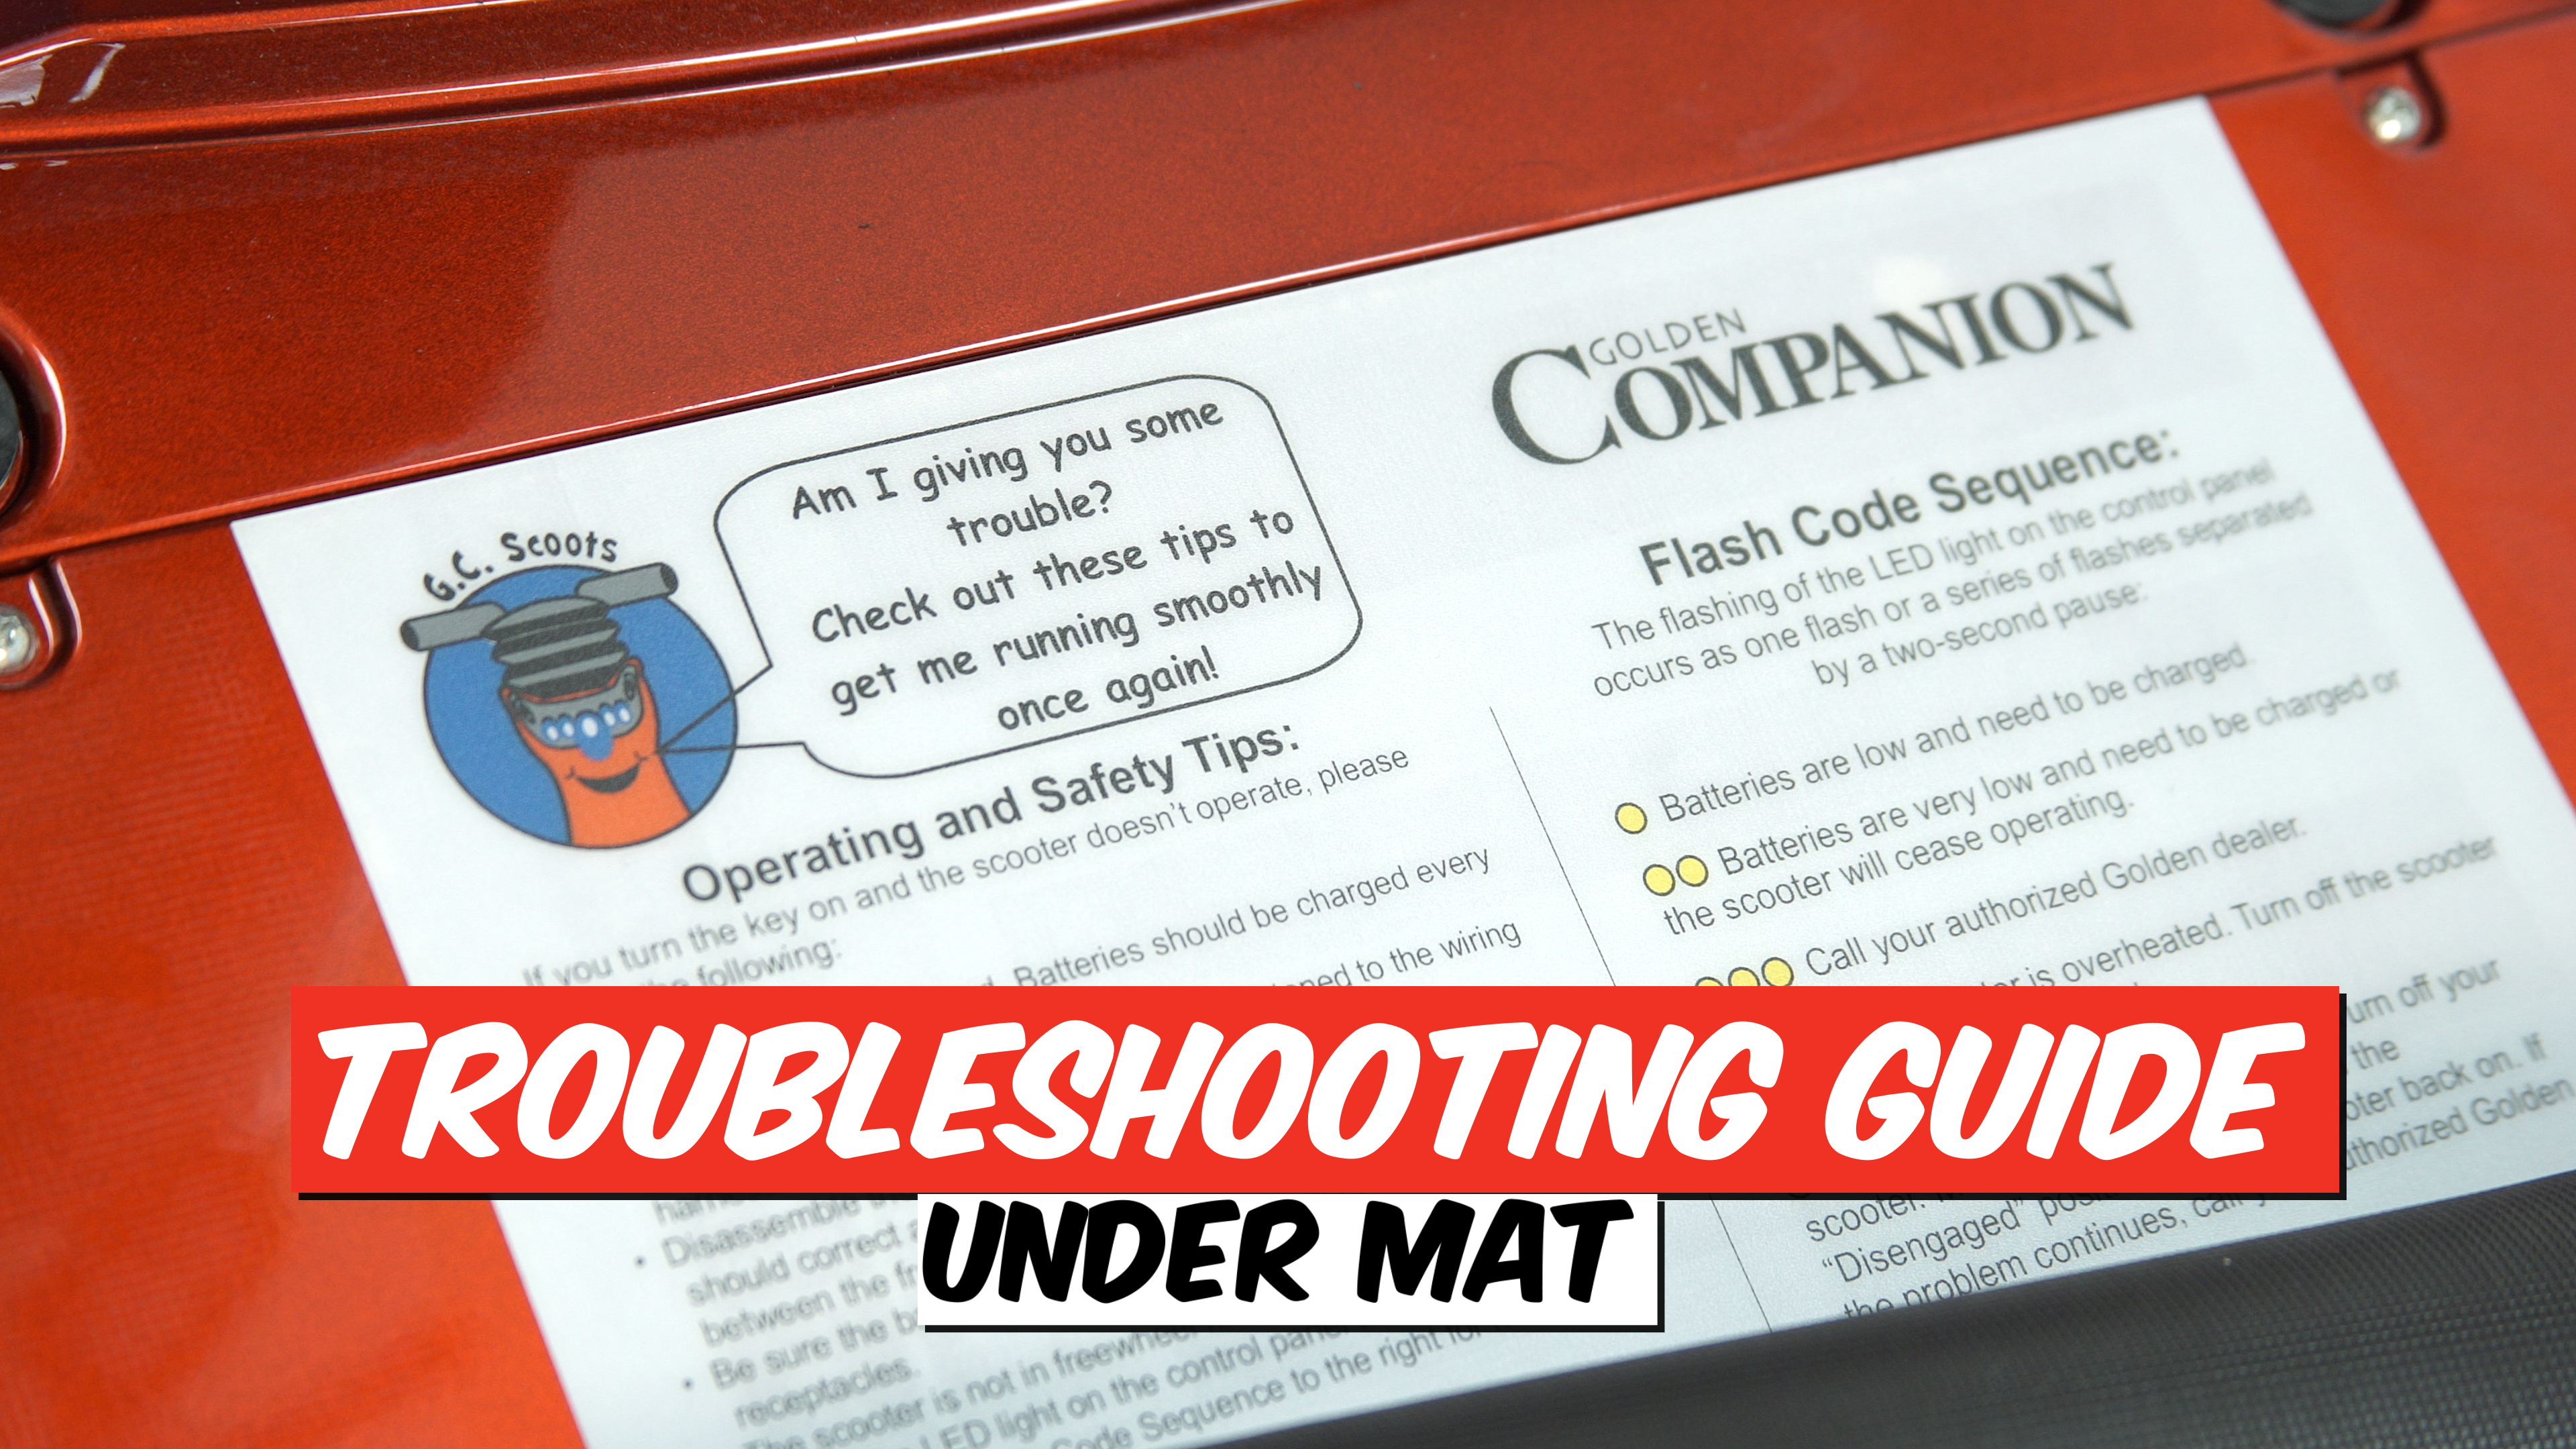 Photo of the guide for troubleshooting under mat.